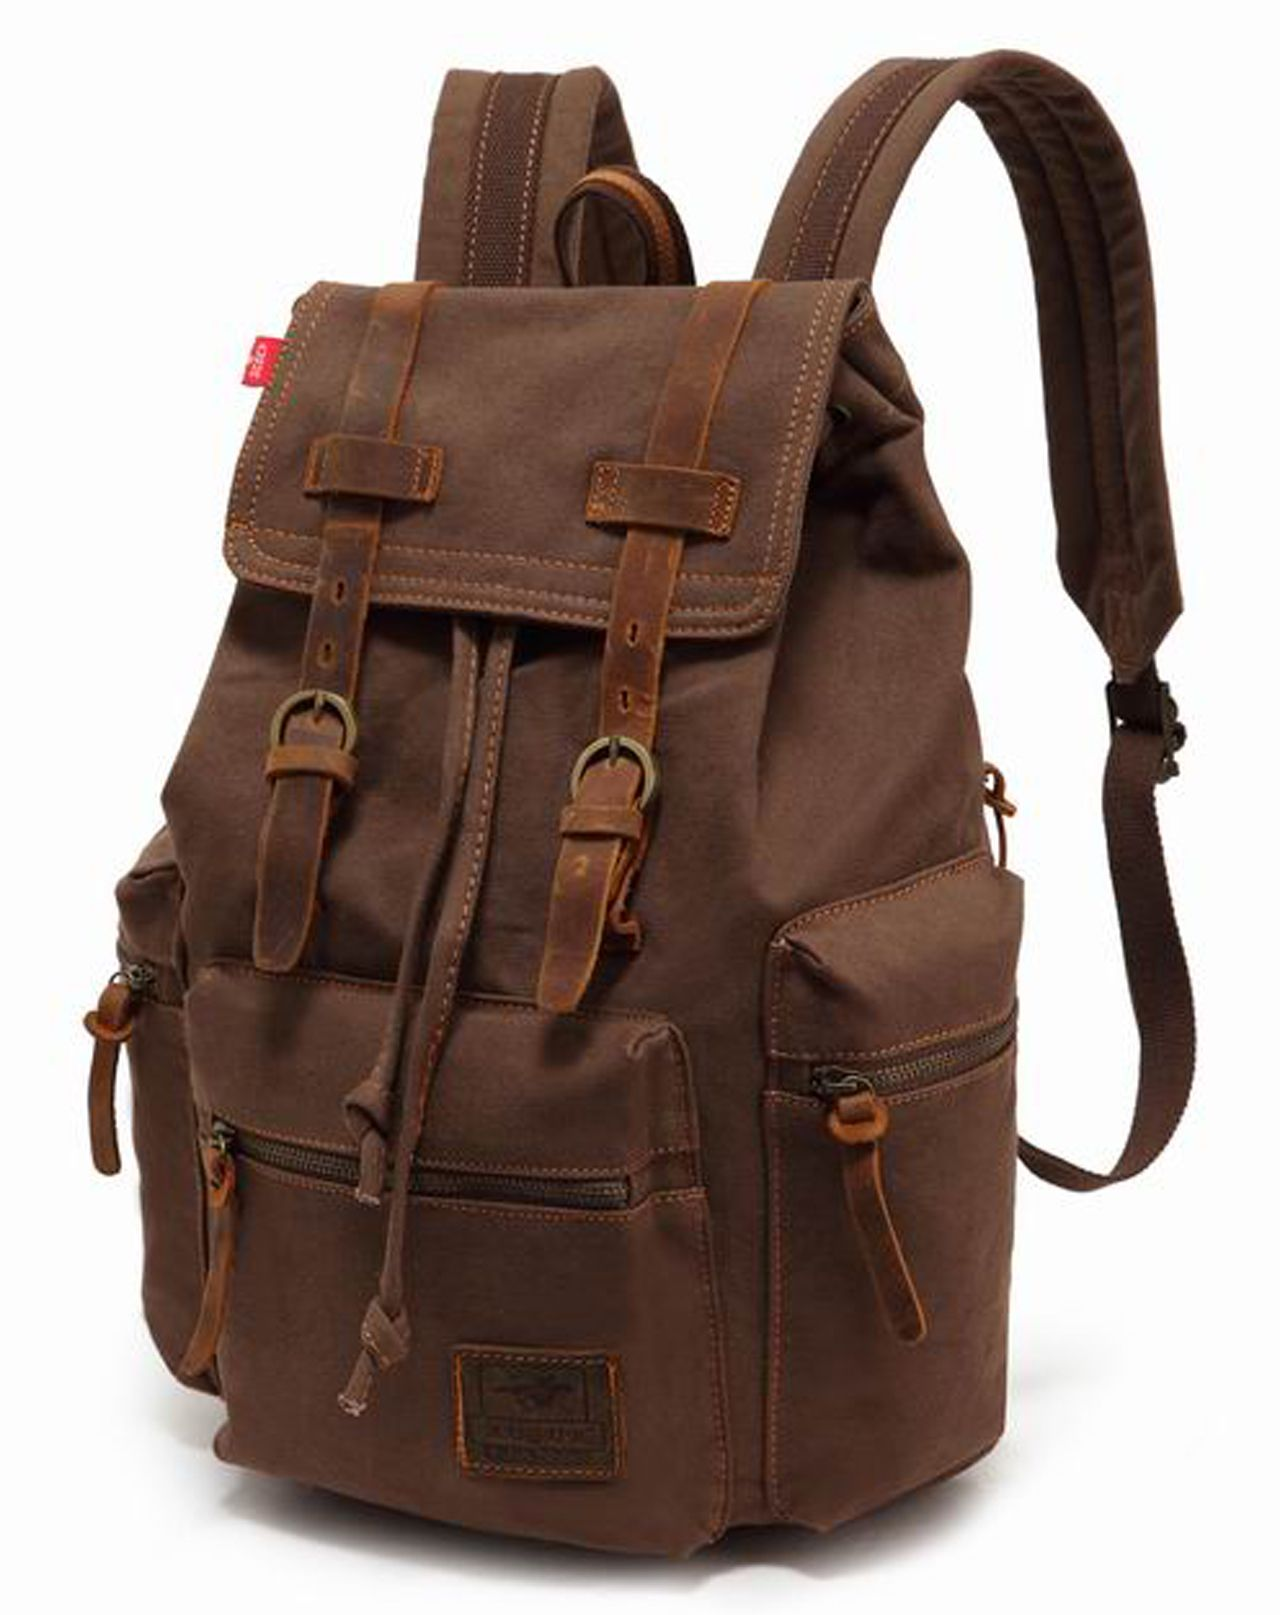 Details about Men Women Travel Canvas Backpack Rucksack Camping ... 122536ed99667